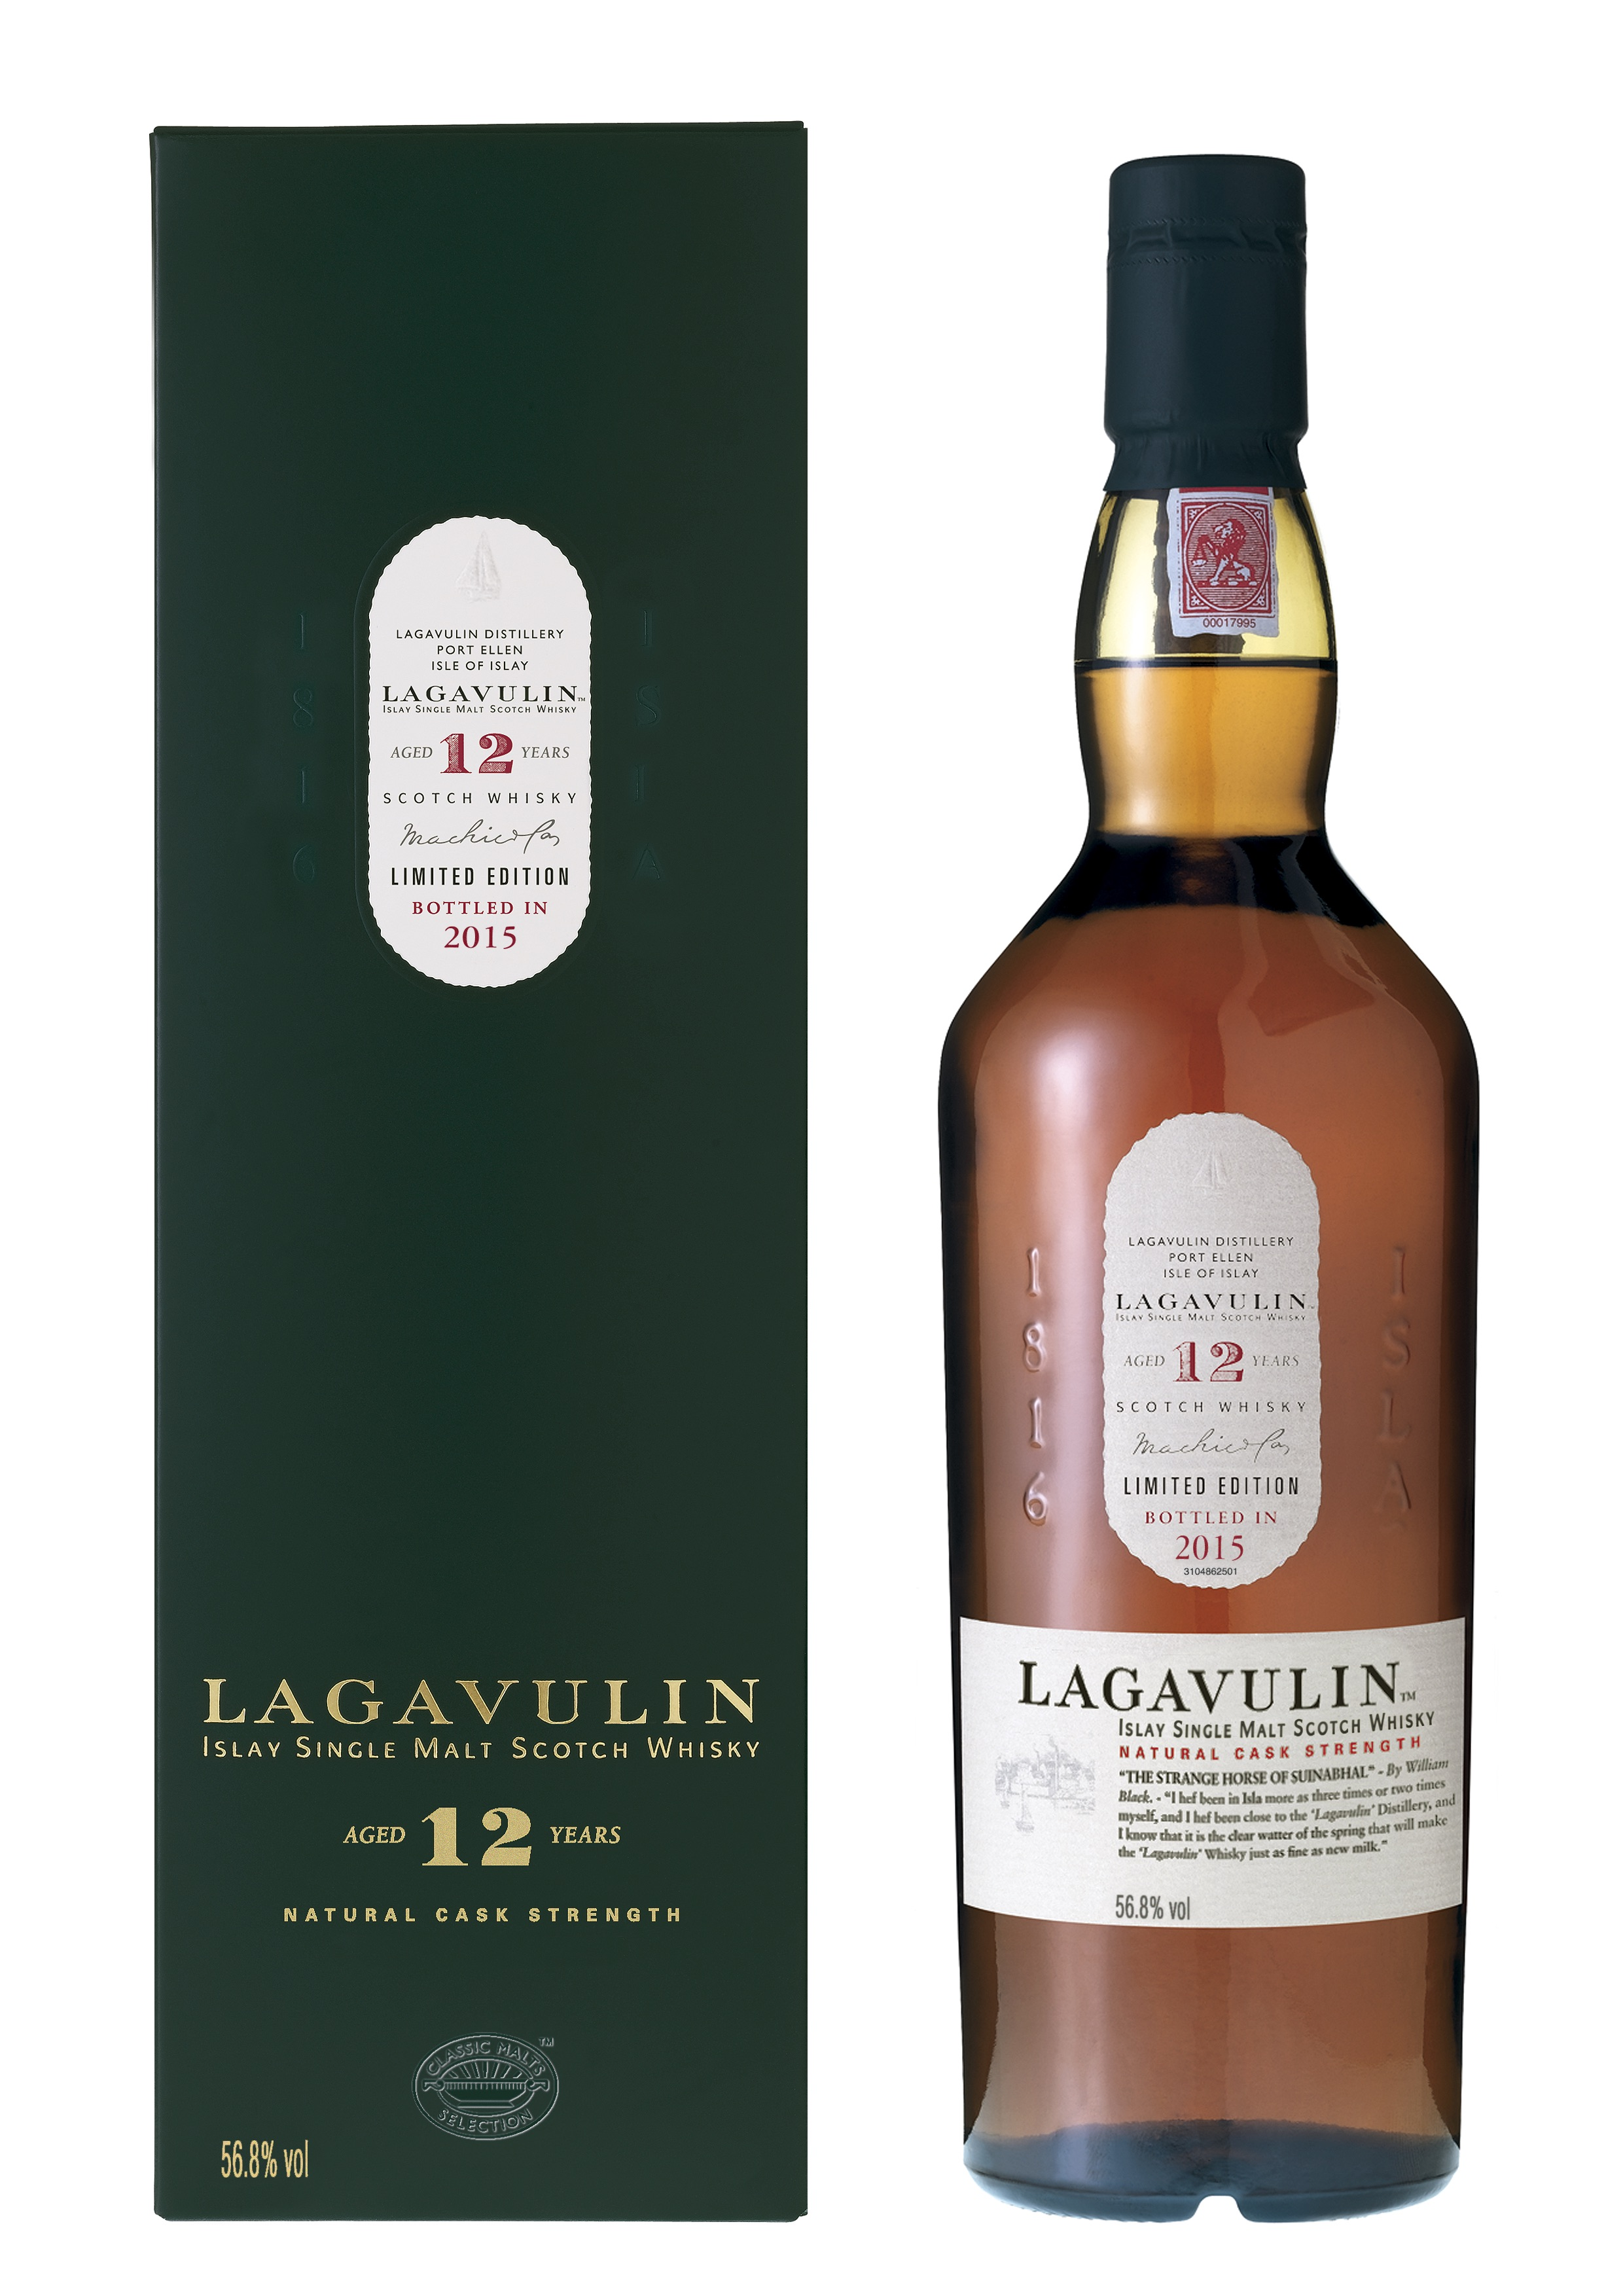 Lagavulin 12 Years Old Limited Edition 2015